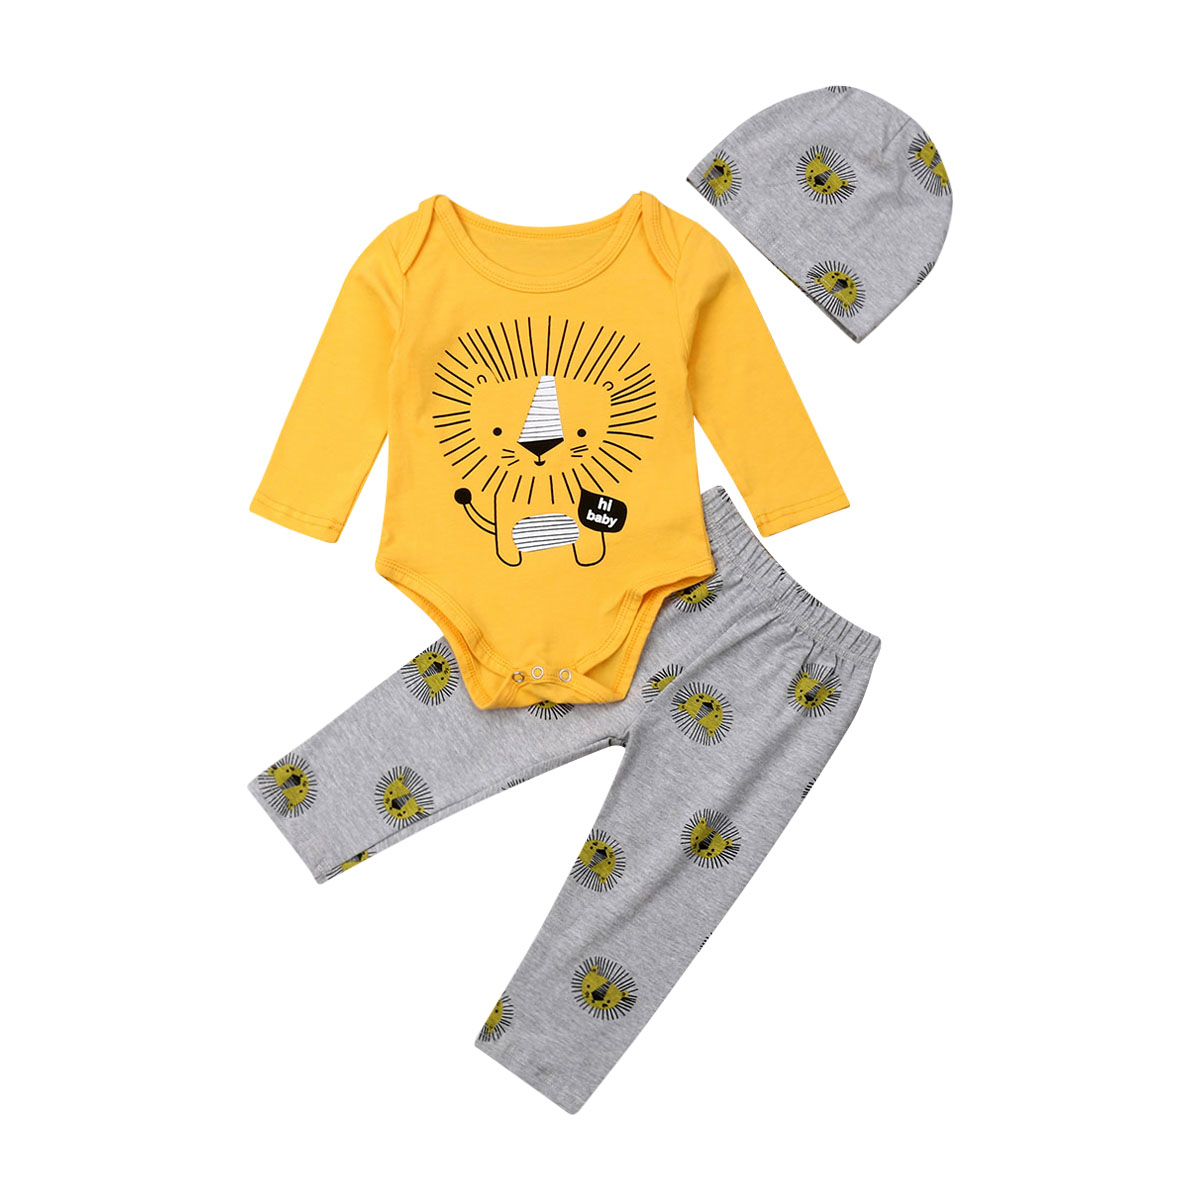 2019 New Autumn Kids Baby Clothes Boy Lion King Print Long Sleeve Tops Romper Pants Hat 3PCS Casual Clothes Cartoon 0-3 Years